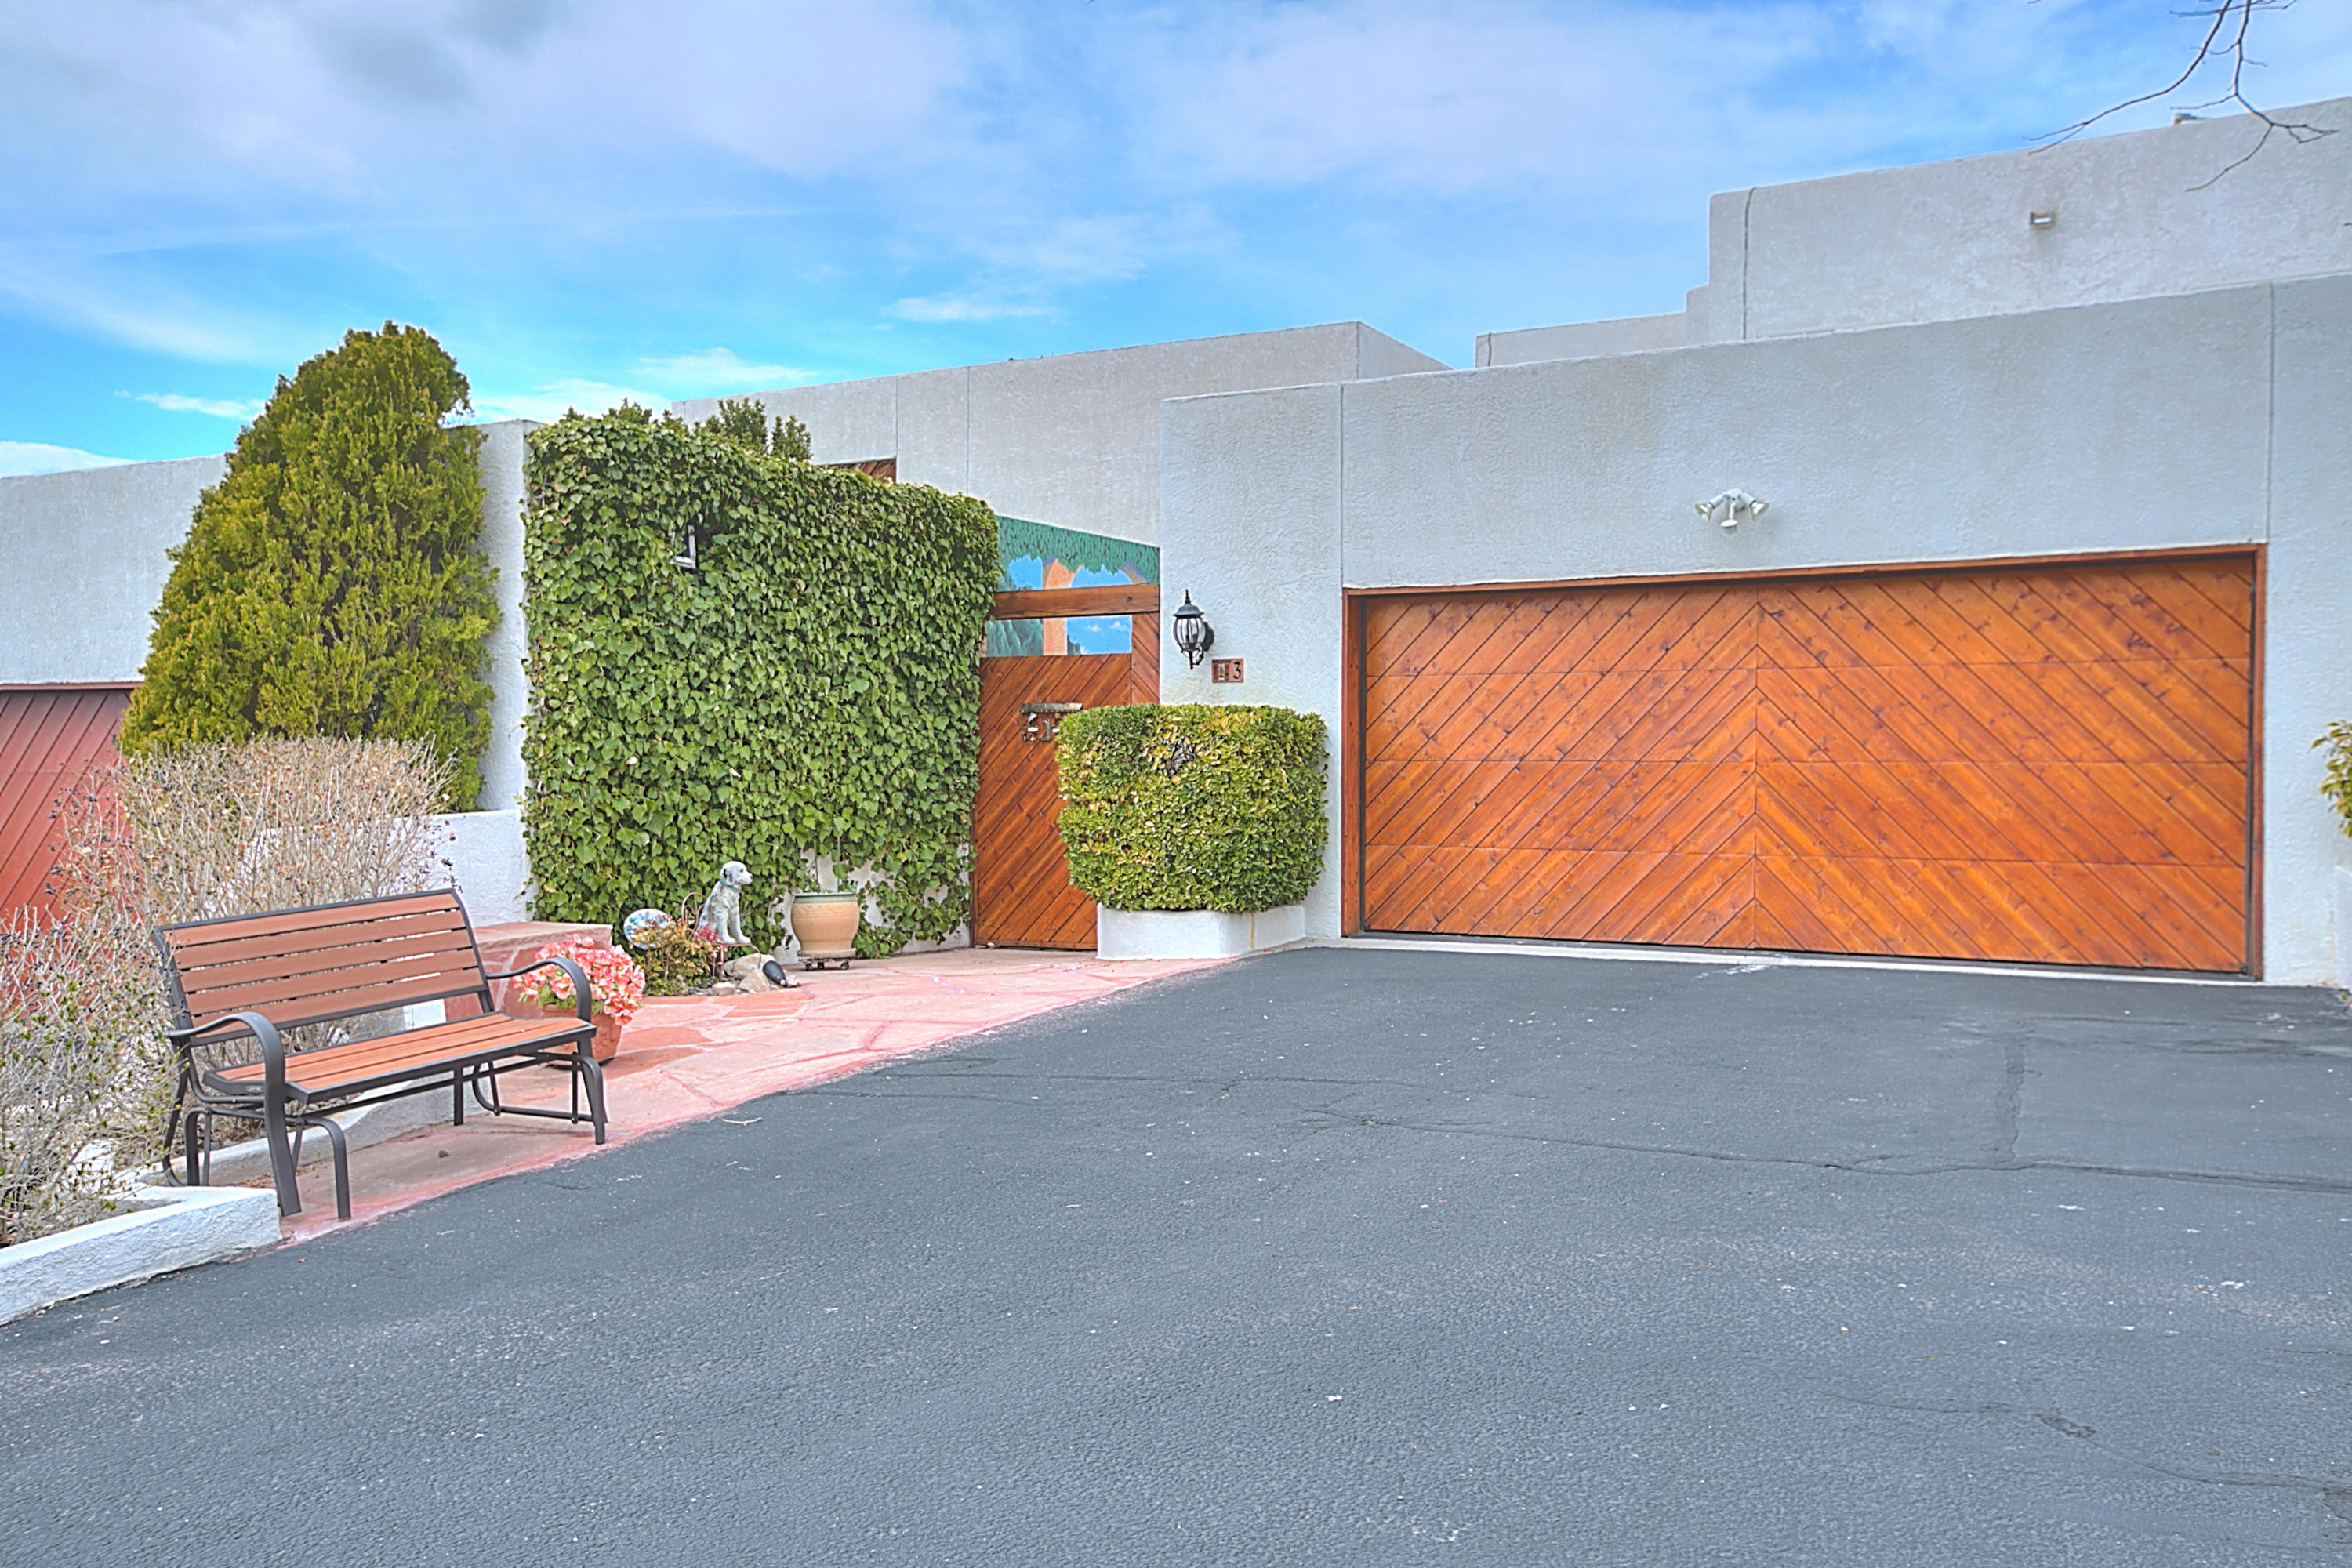 This custom split level townhouse is located in the desirable Foothills and is ready to call home. The moment you walk through the private entry courtyard, you can't help but notice the beautiful artwork that makes you feel like you're in another city. As you enter the home, your eyes draw you to the custom gourmet kitchen that includes granite countertops and endless cabinet space, a kitchen perfect for entertaining guests and a cook's dream. Home also features, a wood burning fireplace, tile and wood floors, refrigerated air, office off of the master, balcony, spiral staircase to upstairs bedroom, raised ceilings, custom master bathroom, and much more. This home was well thought out when remodeled and nothing was left out. A visit to this home will allow you to see it's beauty.